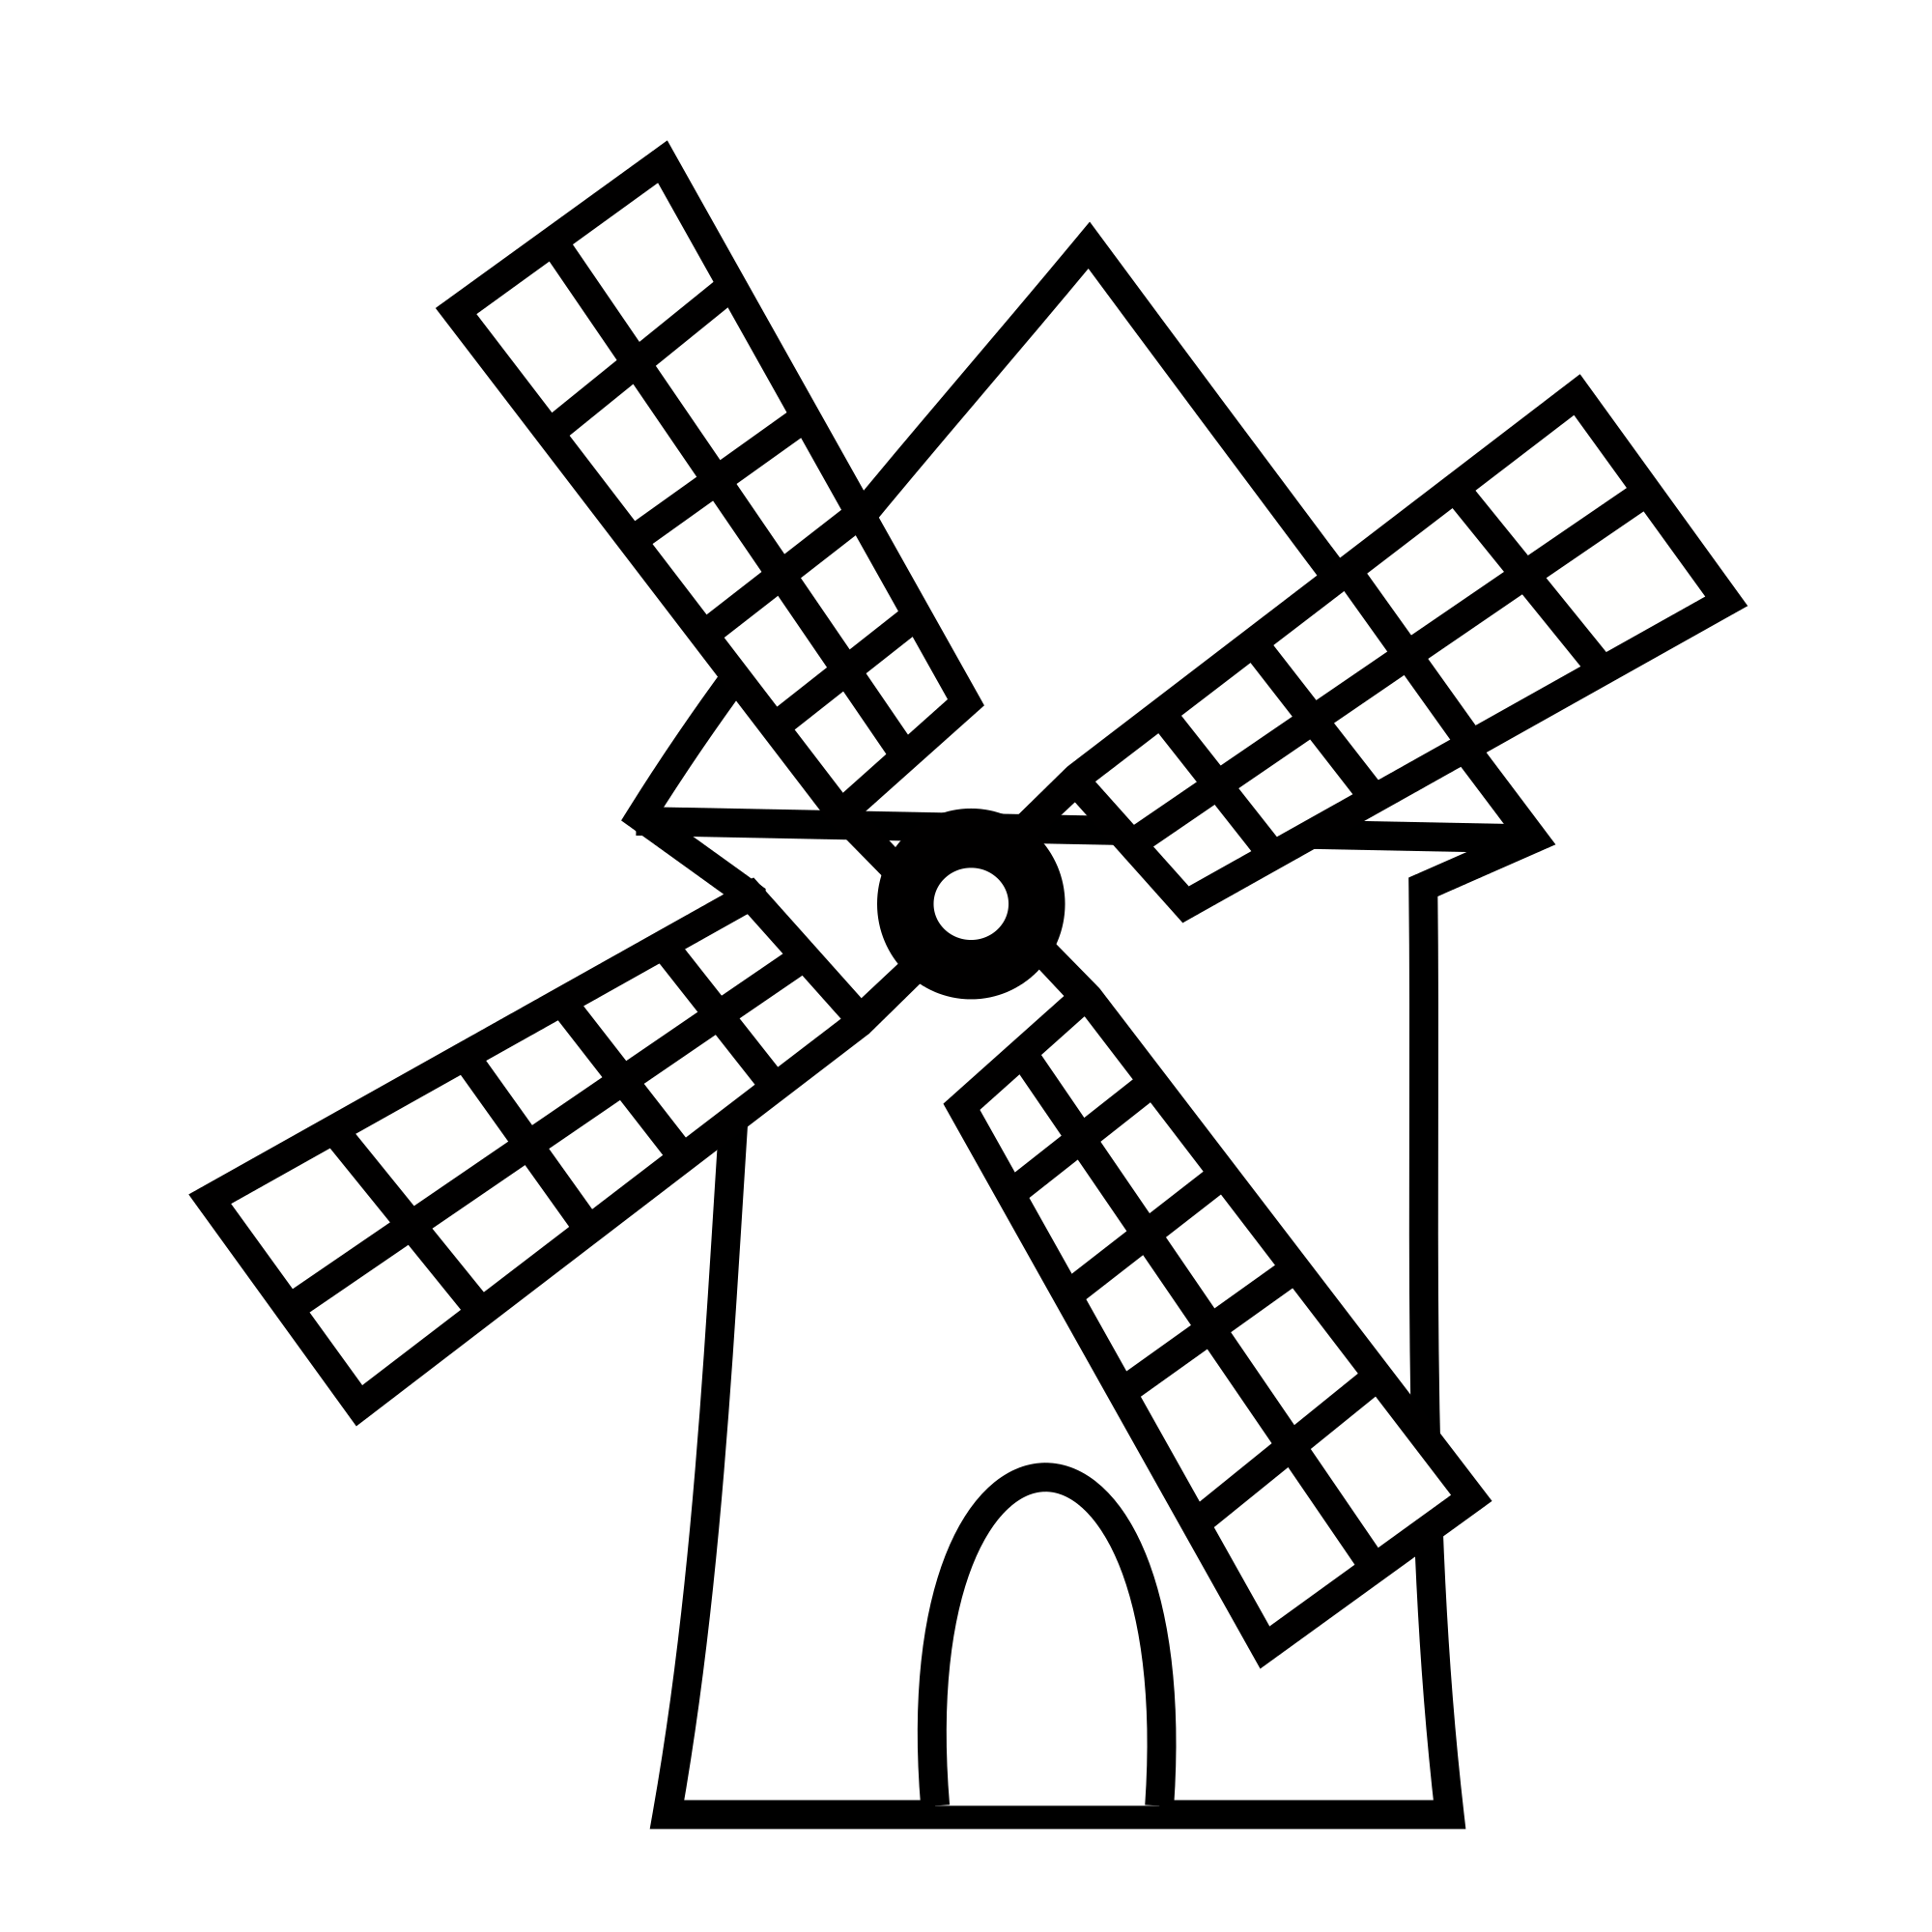 Windmill svg #12, Download drawings